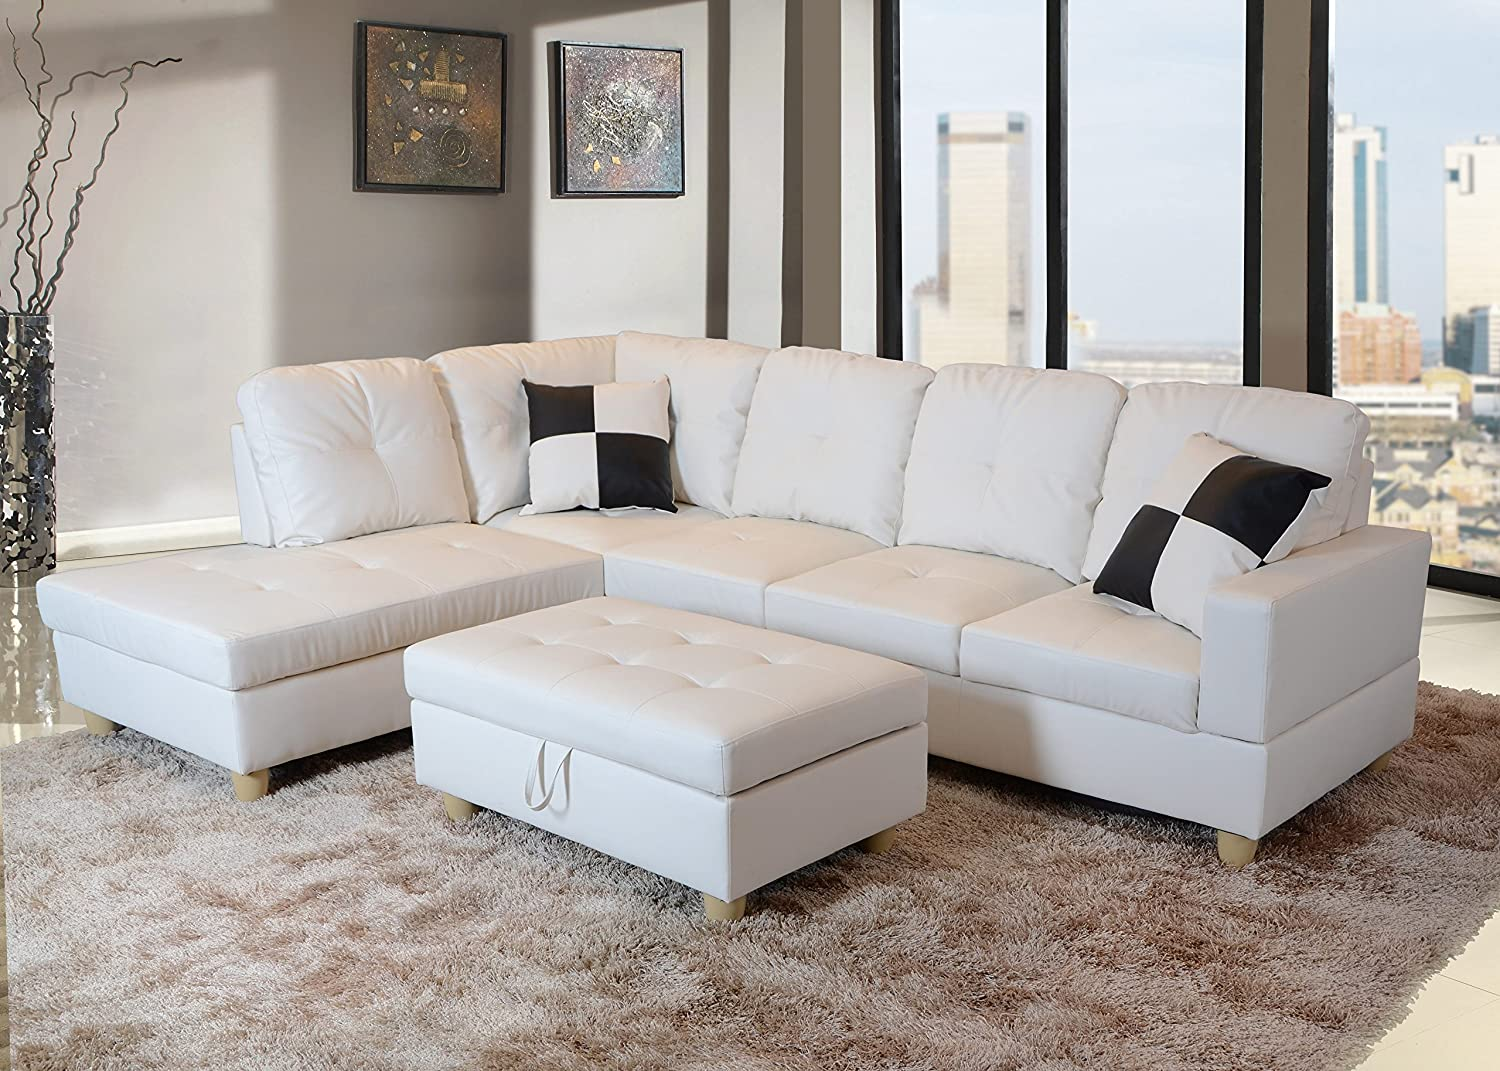 Amazon.com: Lifestyle Sectional Sofa Set In White Faux Leather Comes With  Storage Ottoman And 2 Square Pillows (Right Sofa F92A): Kitchen U0026 Dining